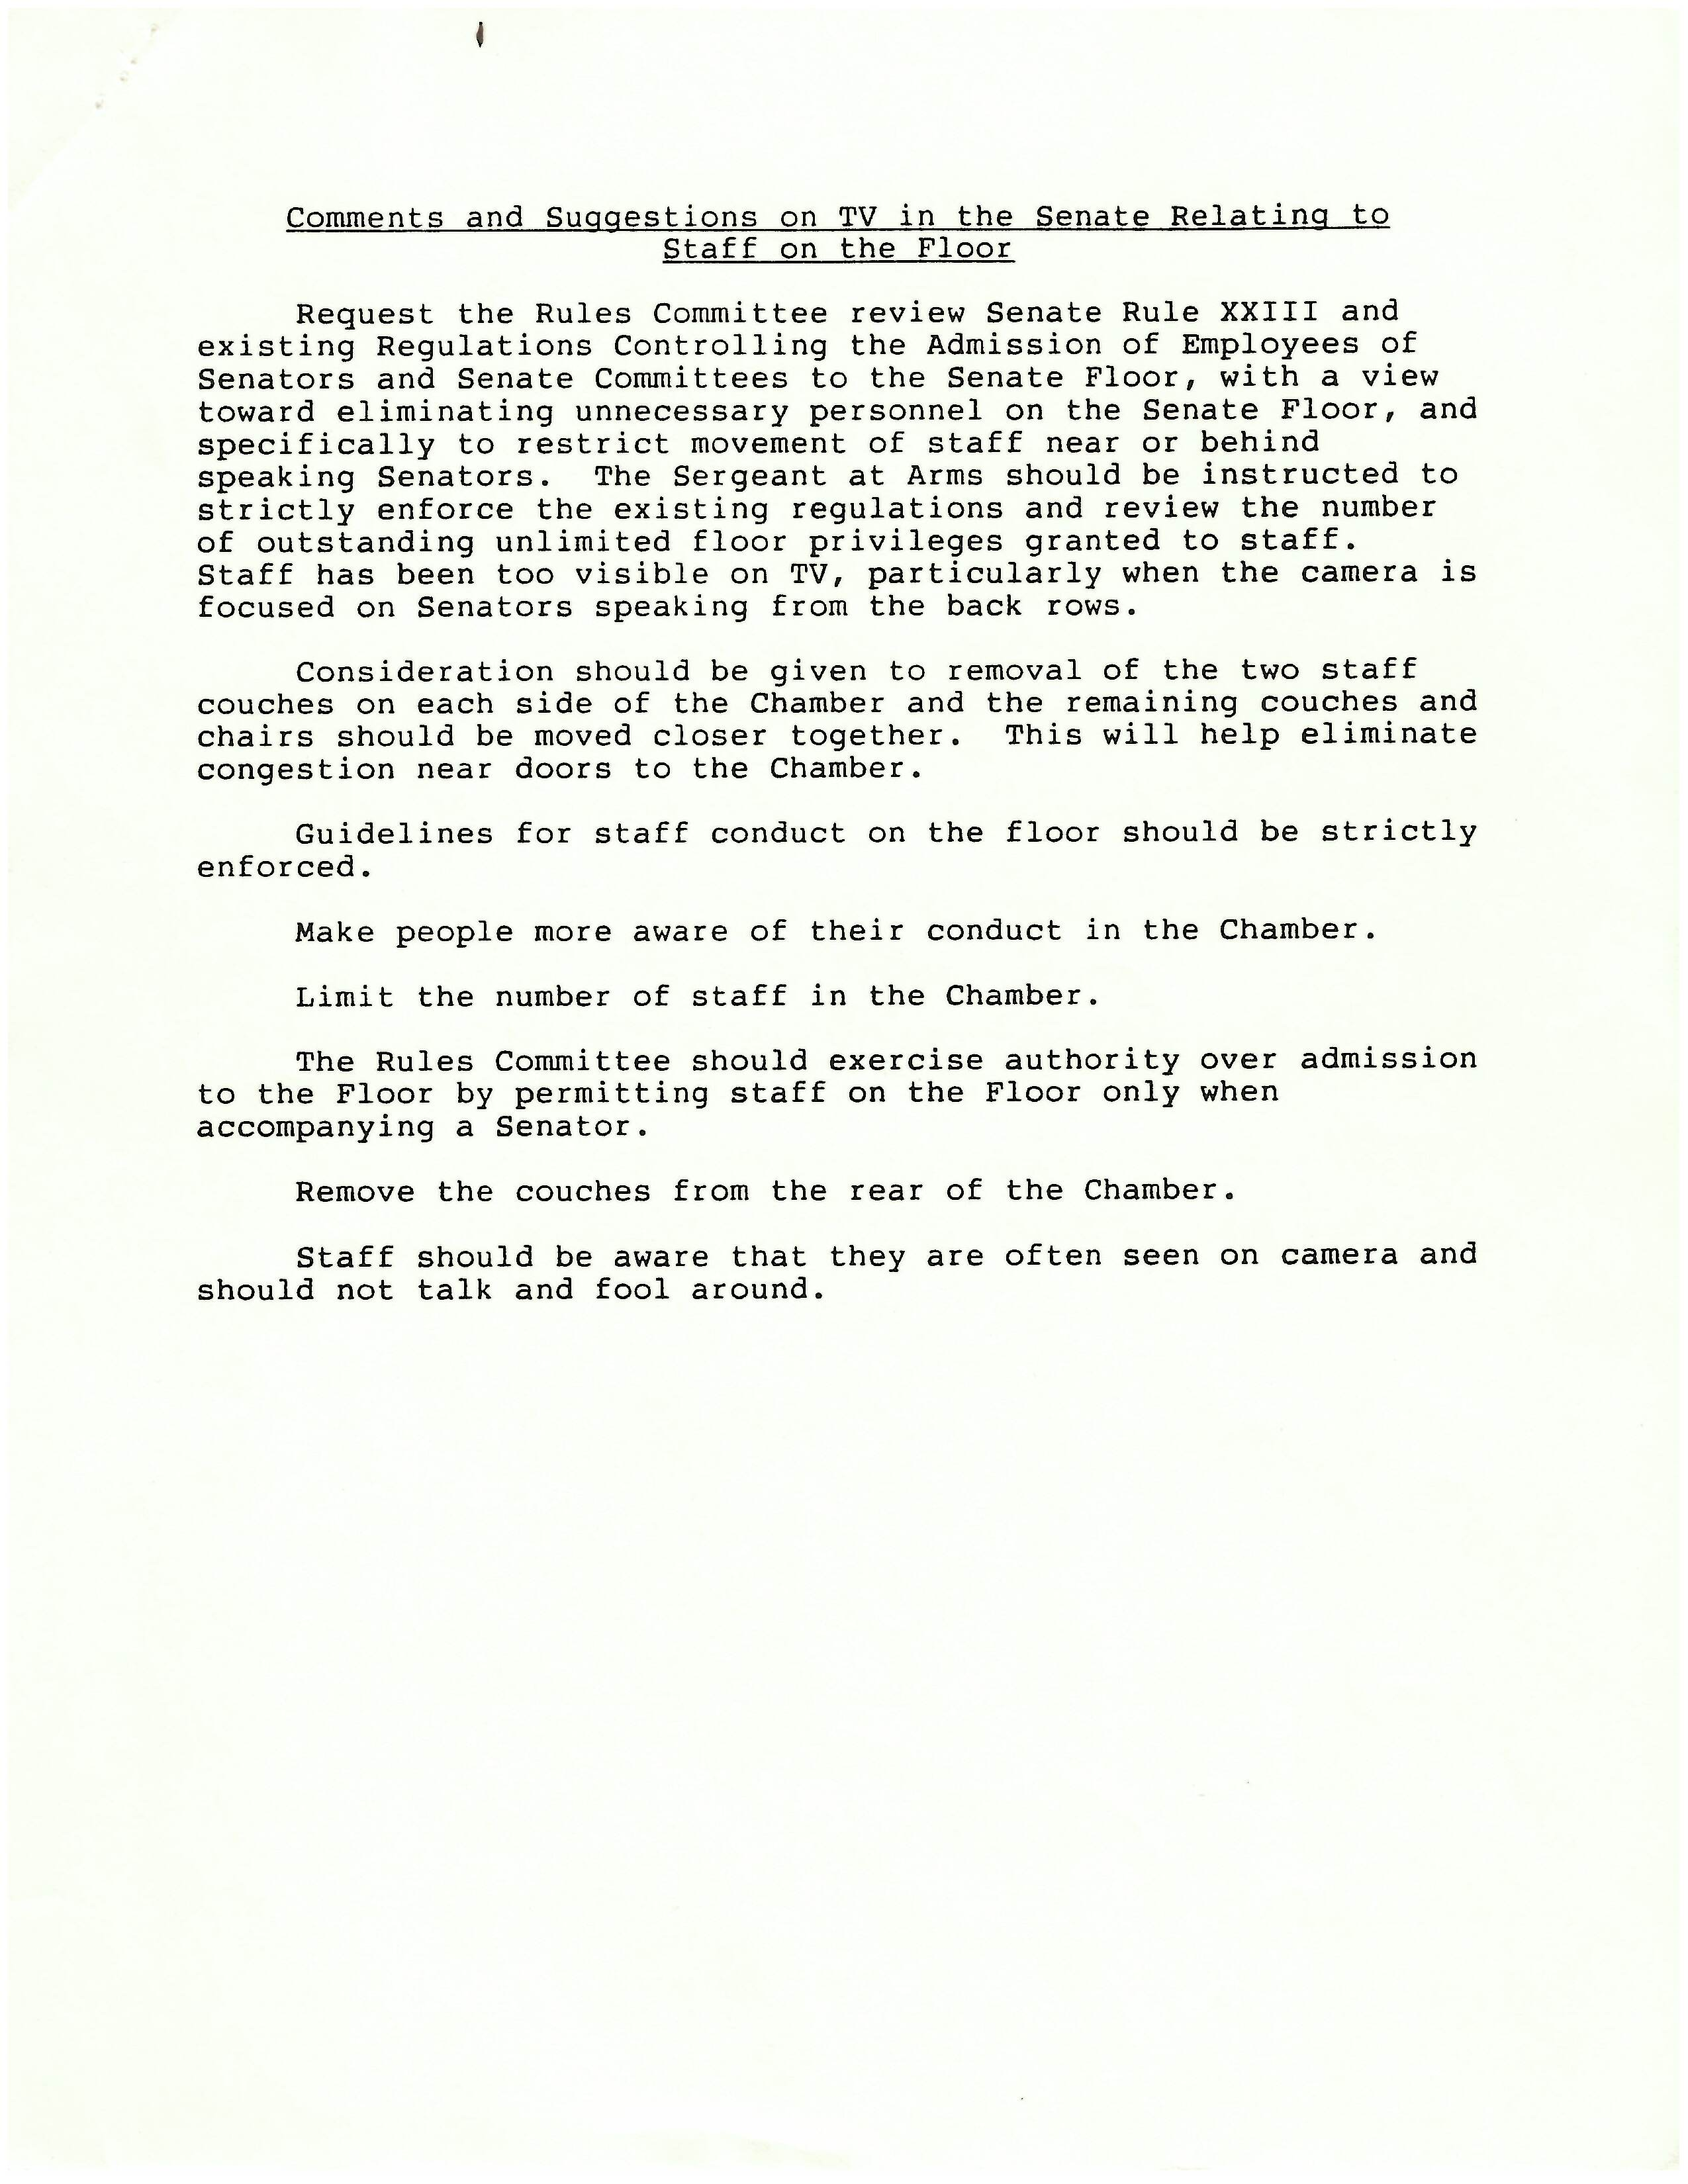 Letter to the Honorable Ernest E. Garcia, Sergeant at Arms, from Charles McC. Mathias, Jr., Chairman of the Rules Committee, July 18, 1986, page 2. (Records of the U.S. Senate, National Archives)